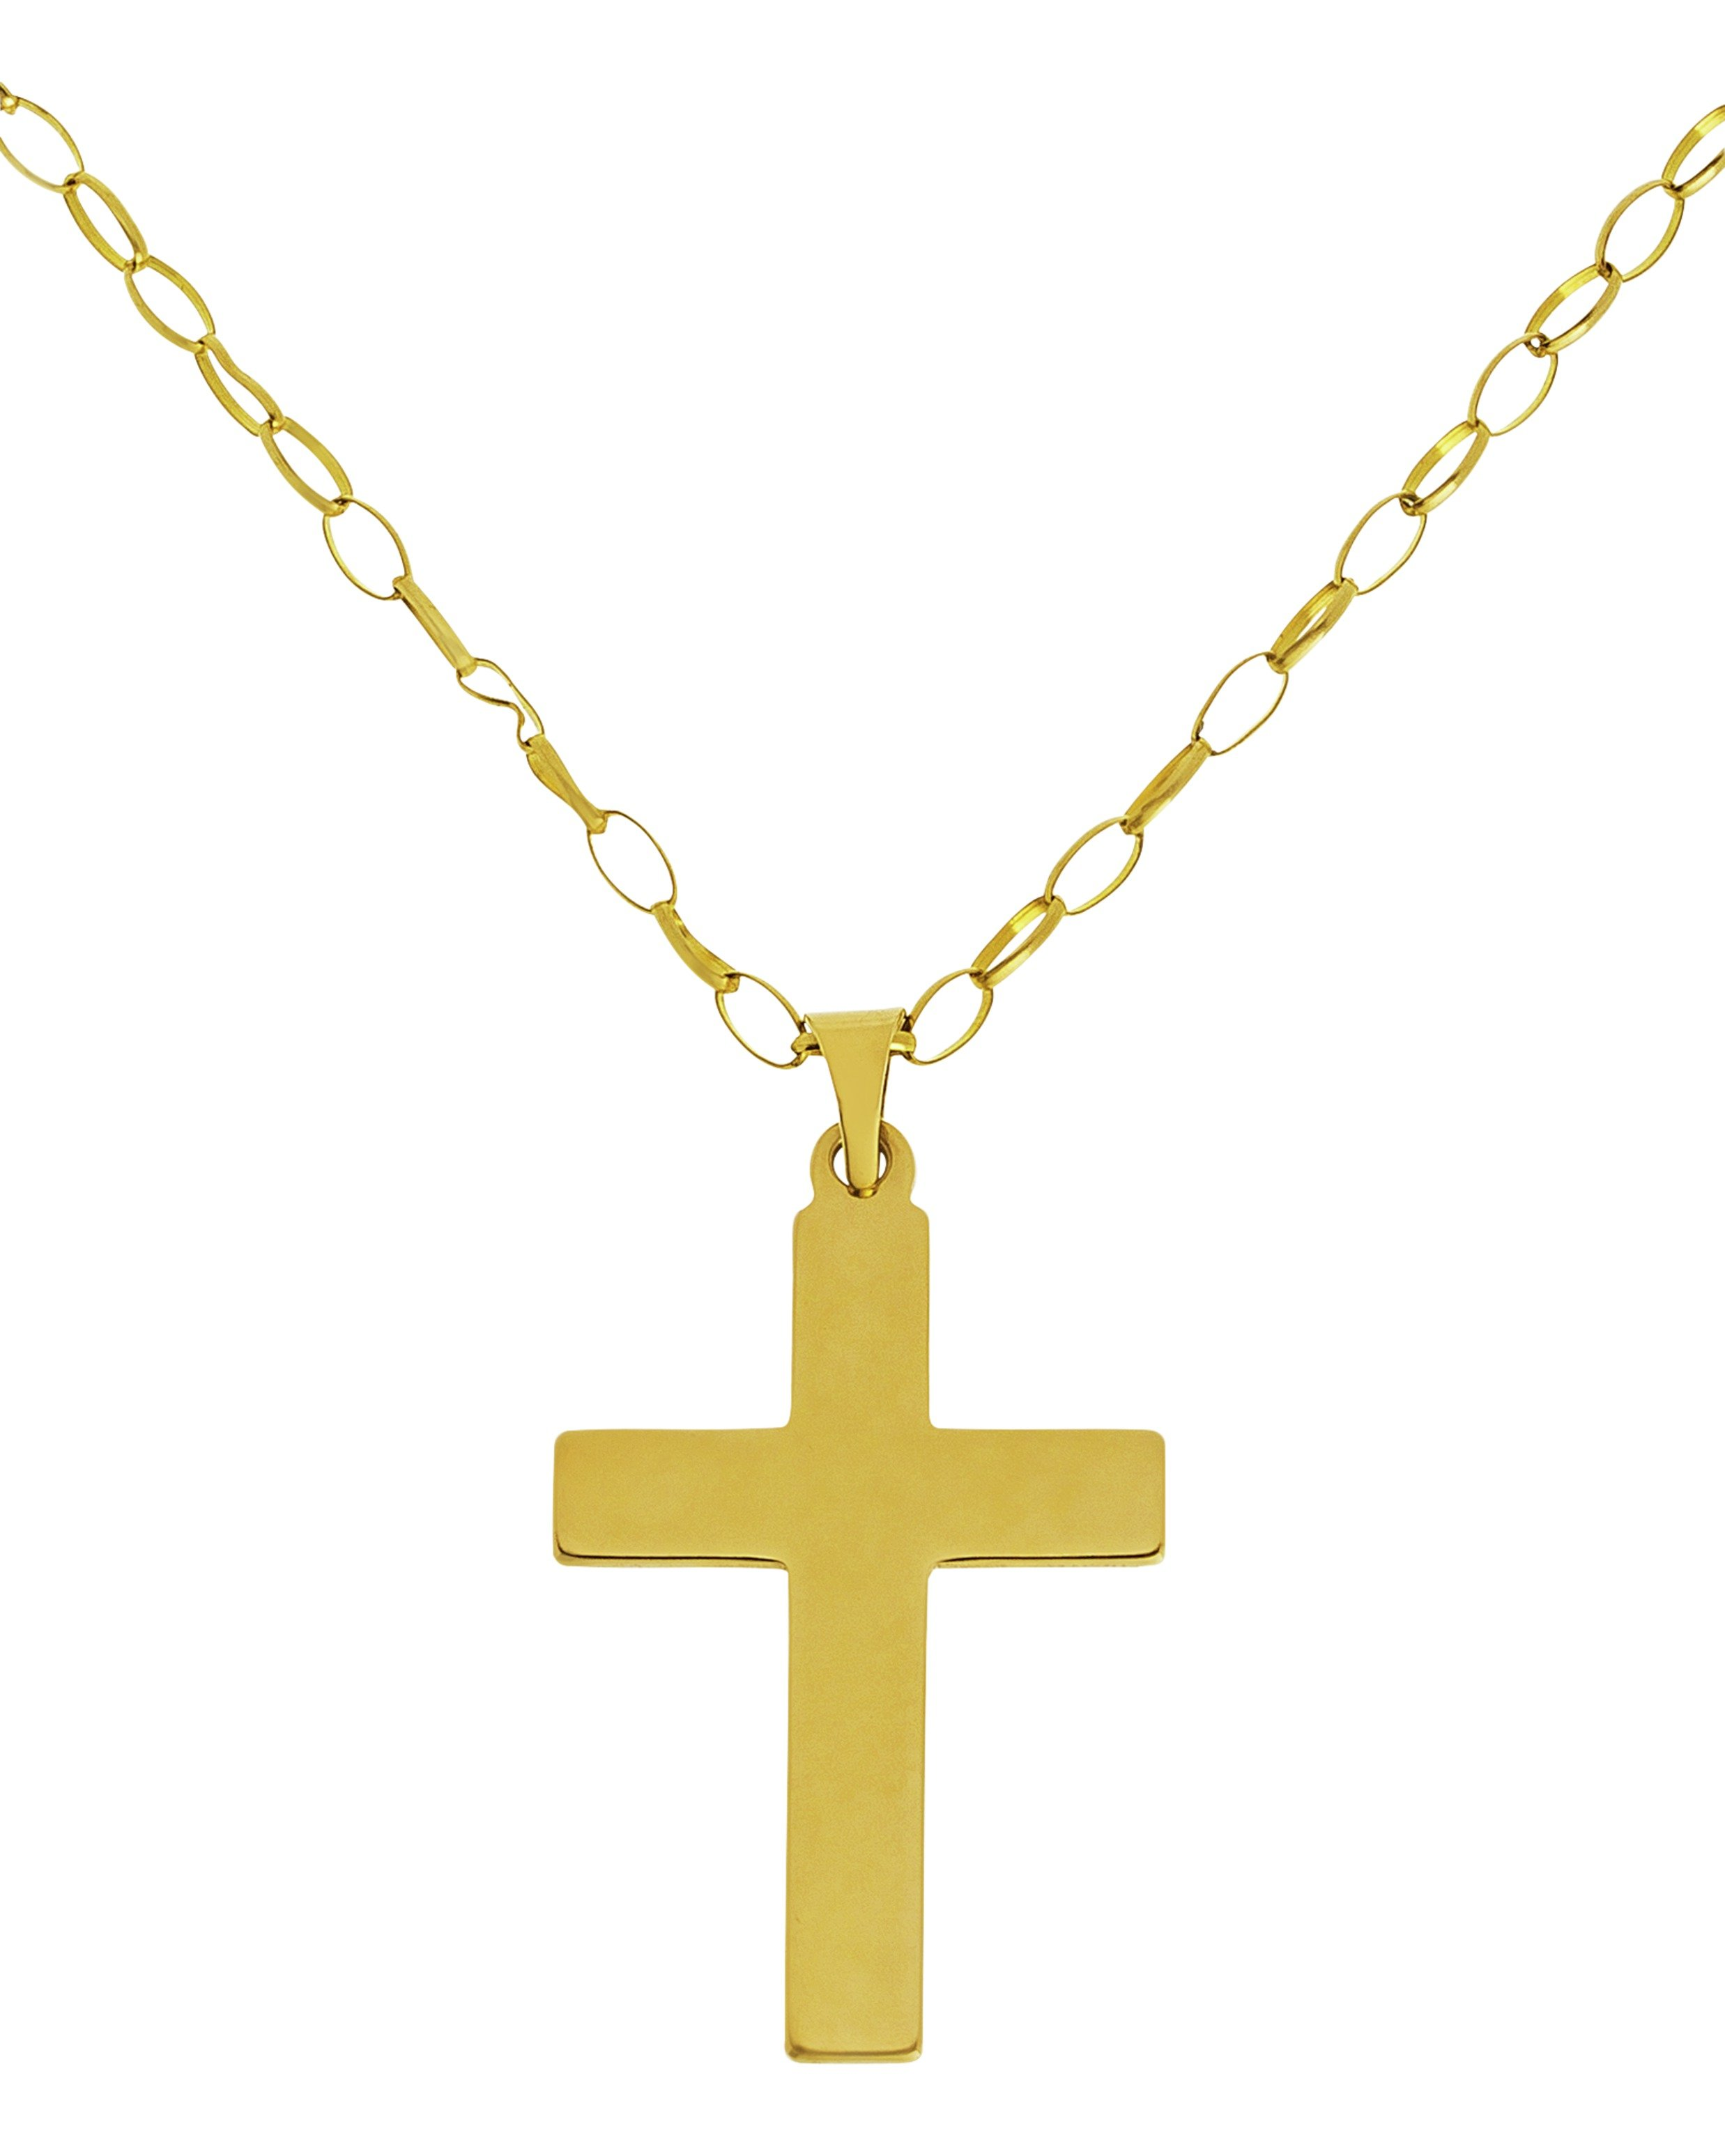 Image of 9ct - Gold - Cross Pendant